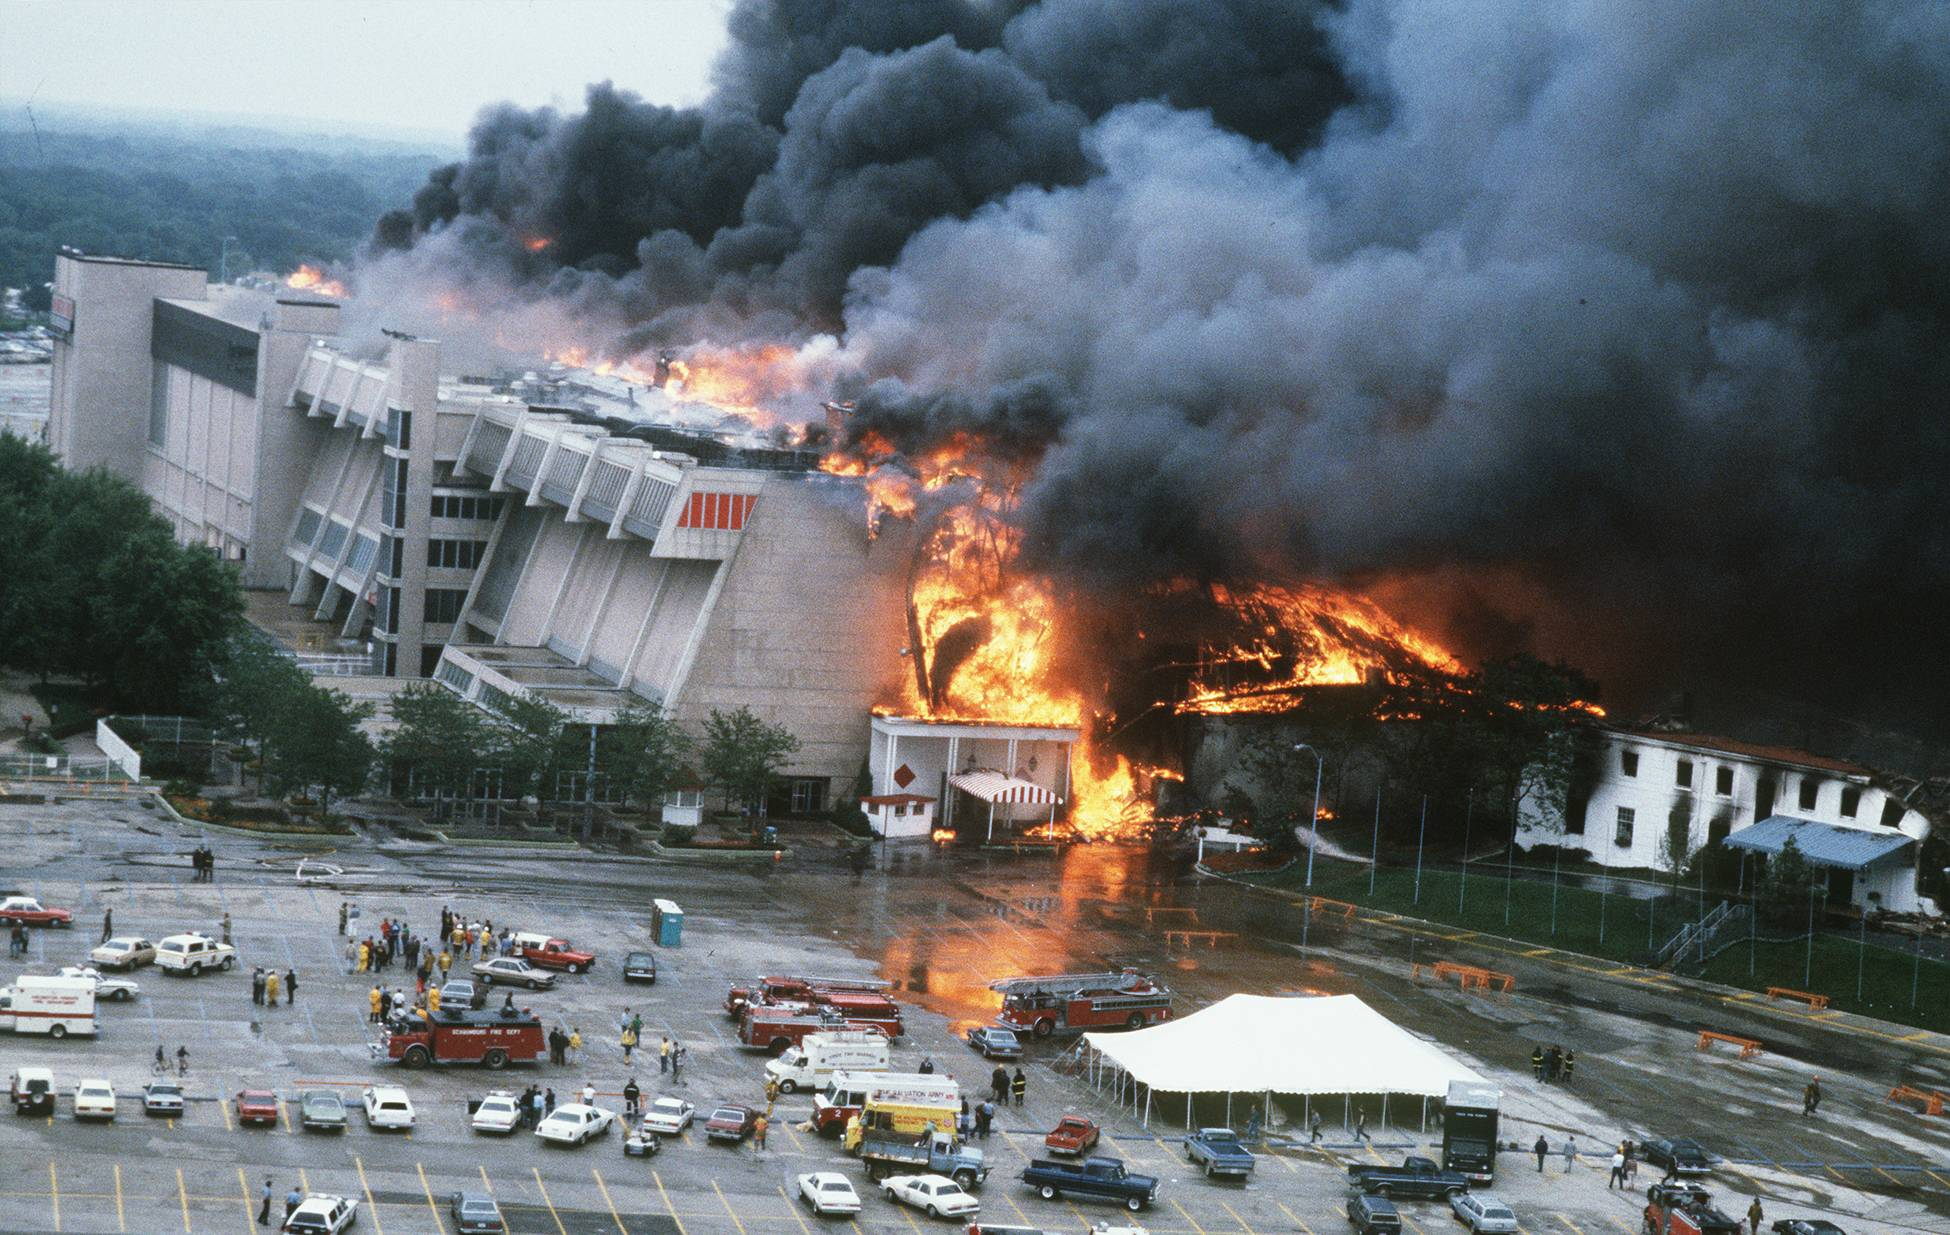 Arlington Park Race Track is consumed in flames during a fire which destroyed the world-class horse racing track in 1985.